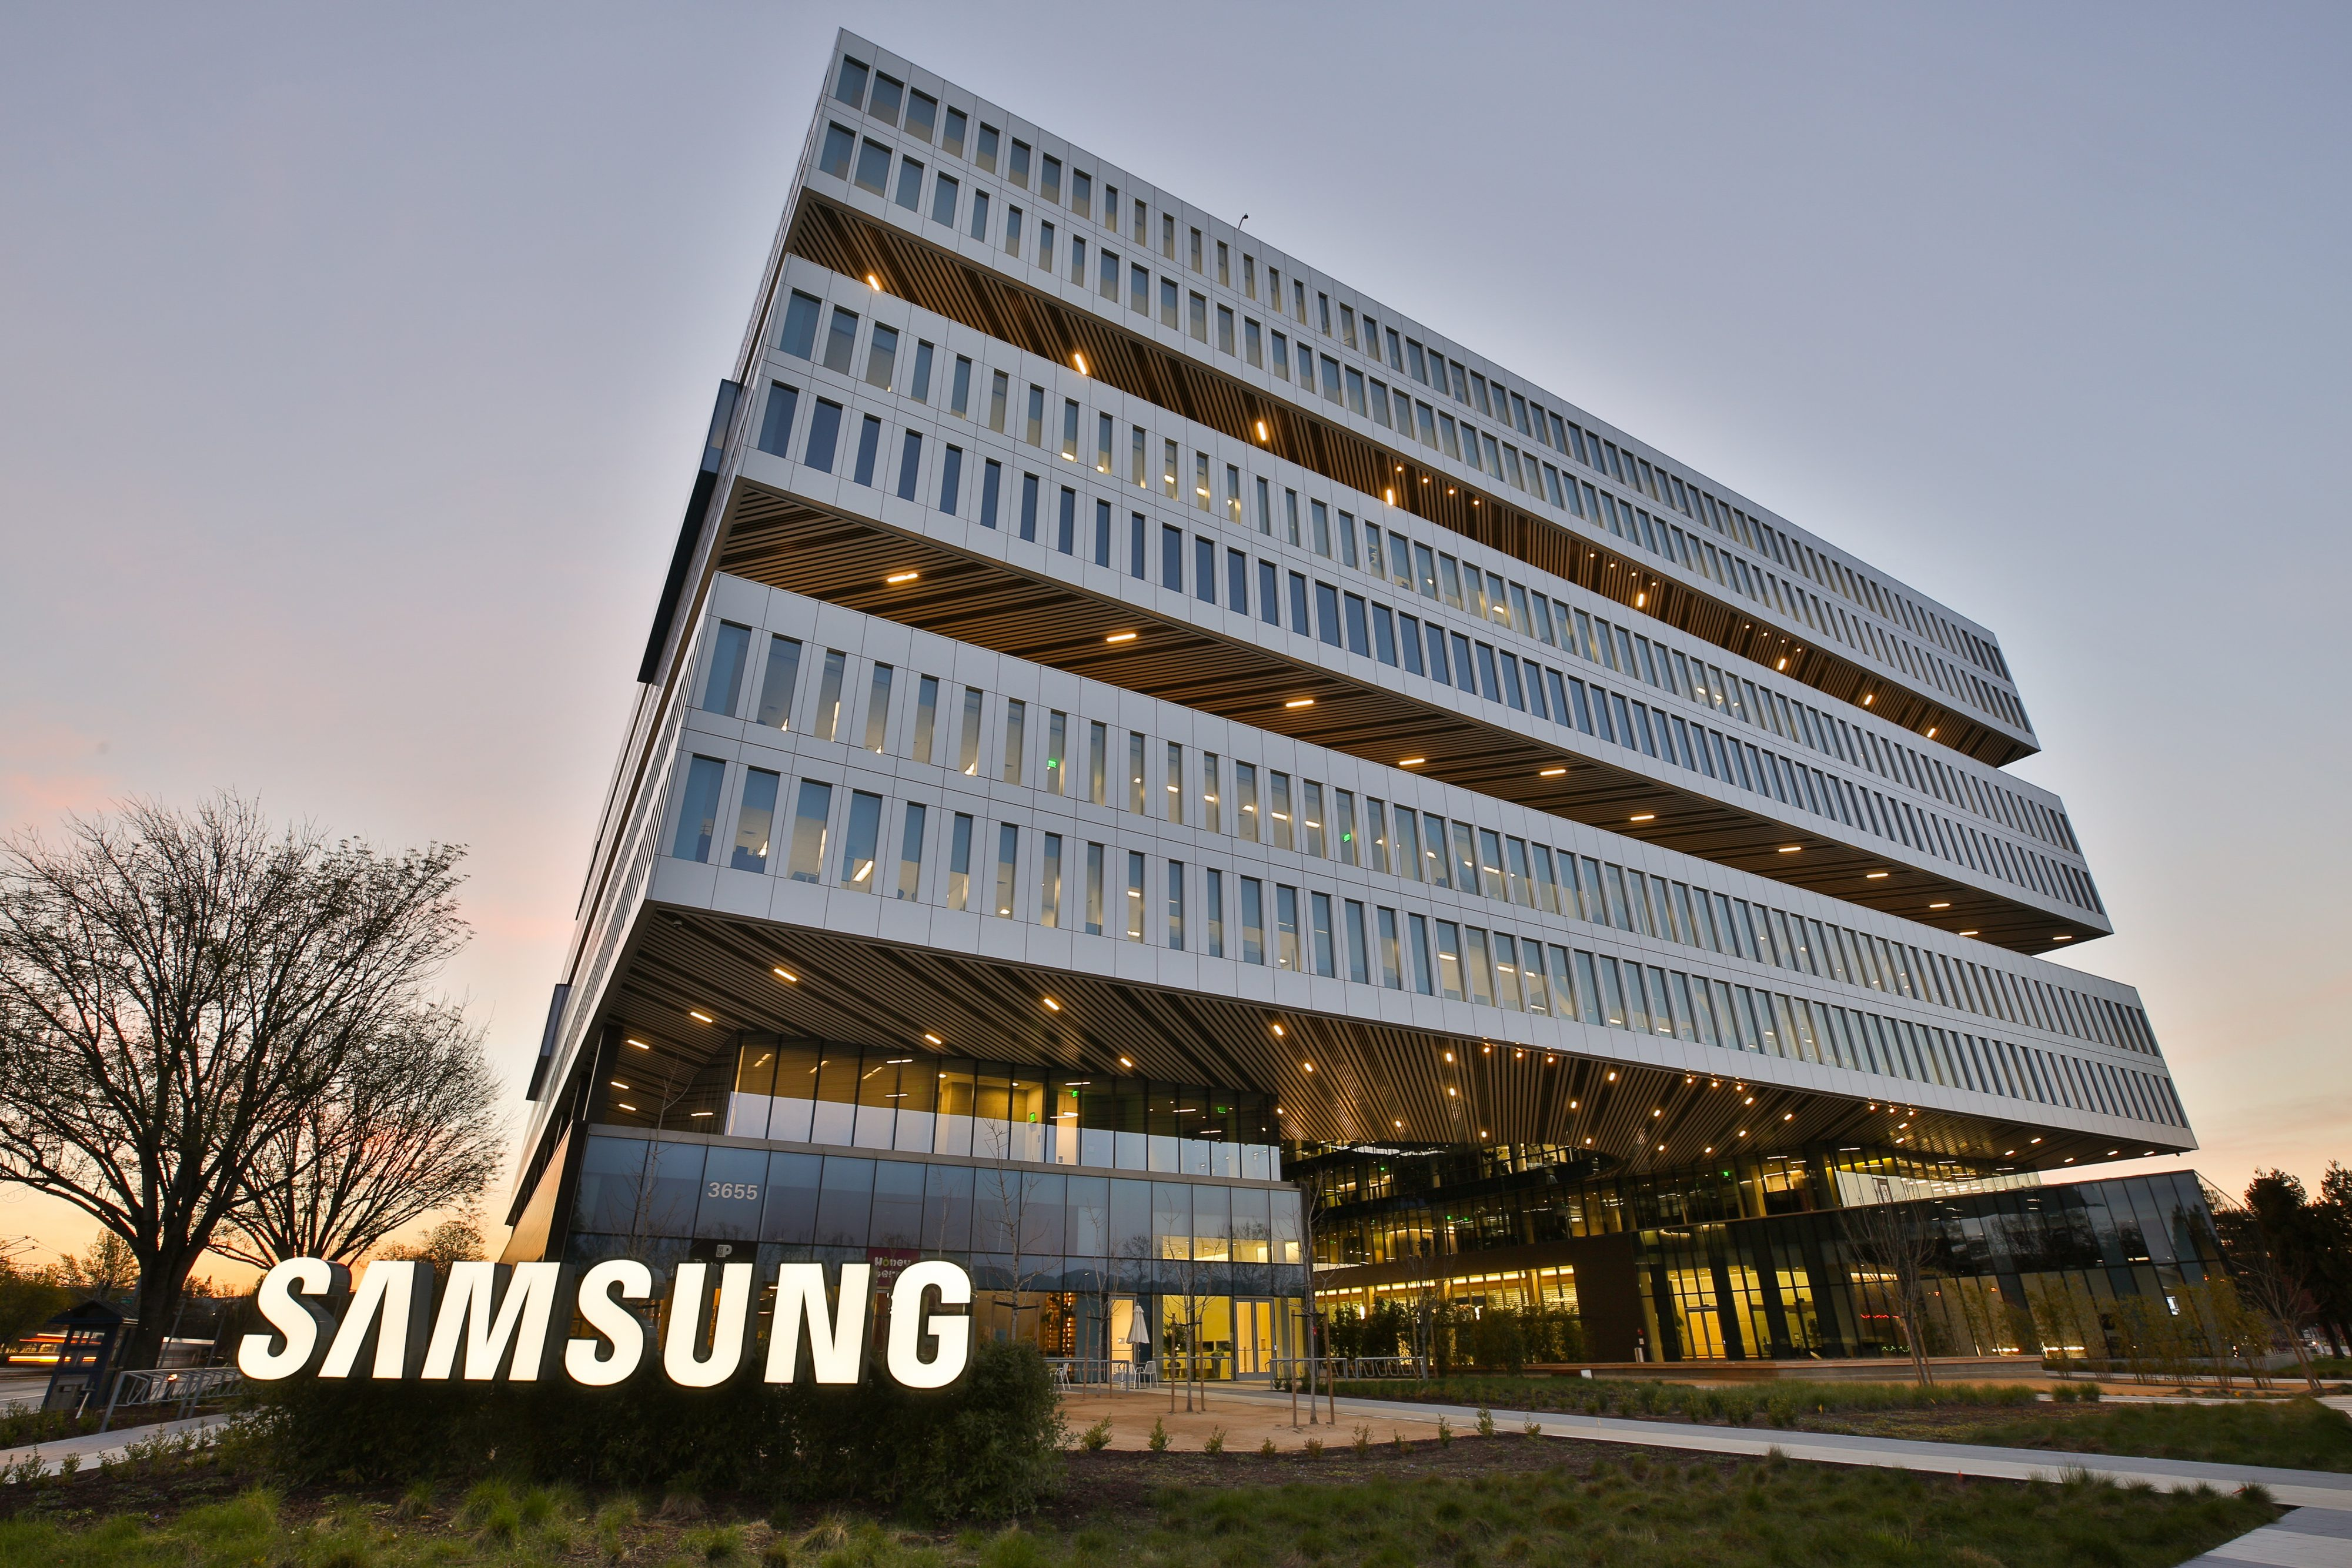 Samsung's San Jose Headquarters Amenities Help Ease Commute ... on npcc campus map, raytheon campus map, cmcc campus map, cisco campus map, tektronix campus map, tms campus map, cadence campus map, mga campus map, metro campus map, neo campus map, spc campus map, mtc campus map, letourneau campus map, cmc campus map, fsc campus map, sprint campus map, nova campus map, bayer campus map, umc campus map, emc campus map,